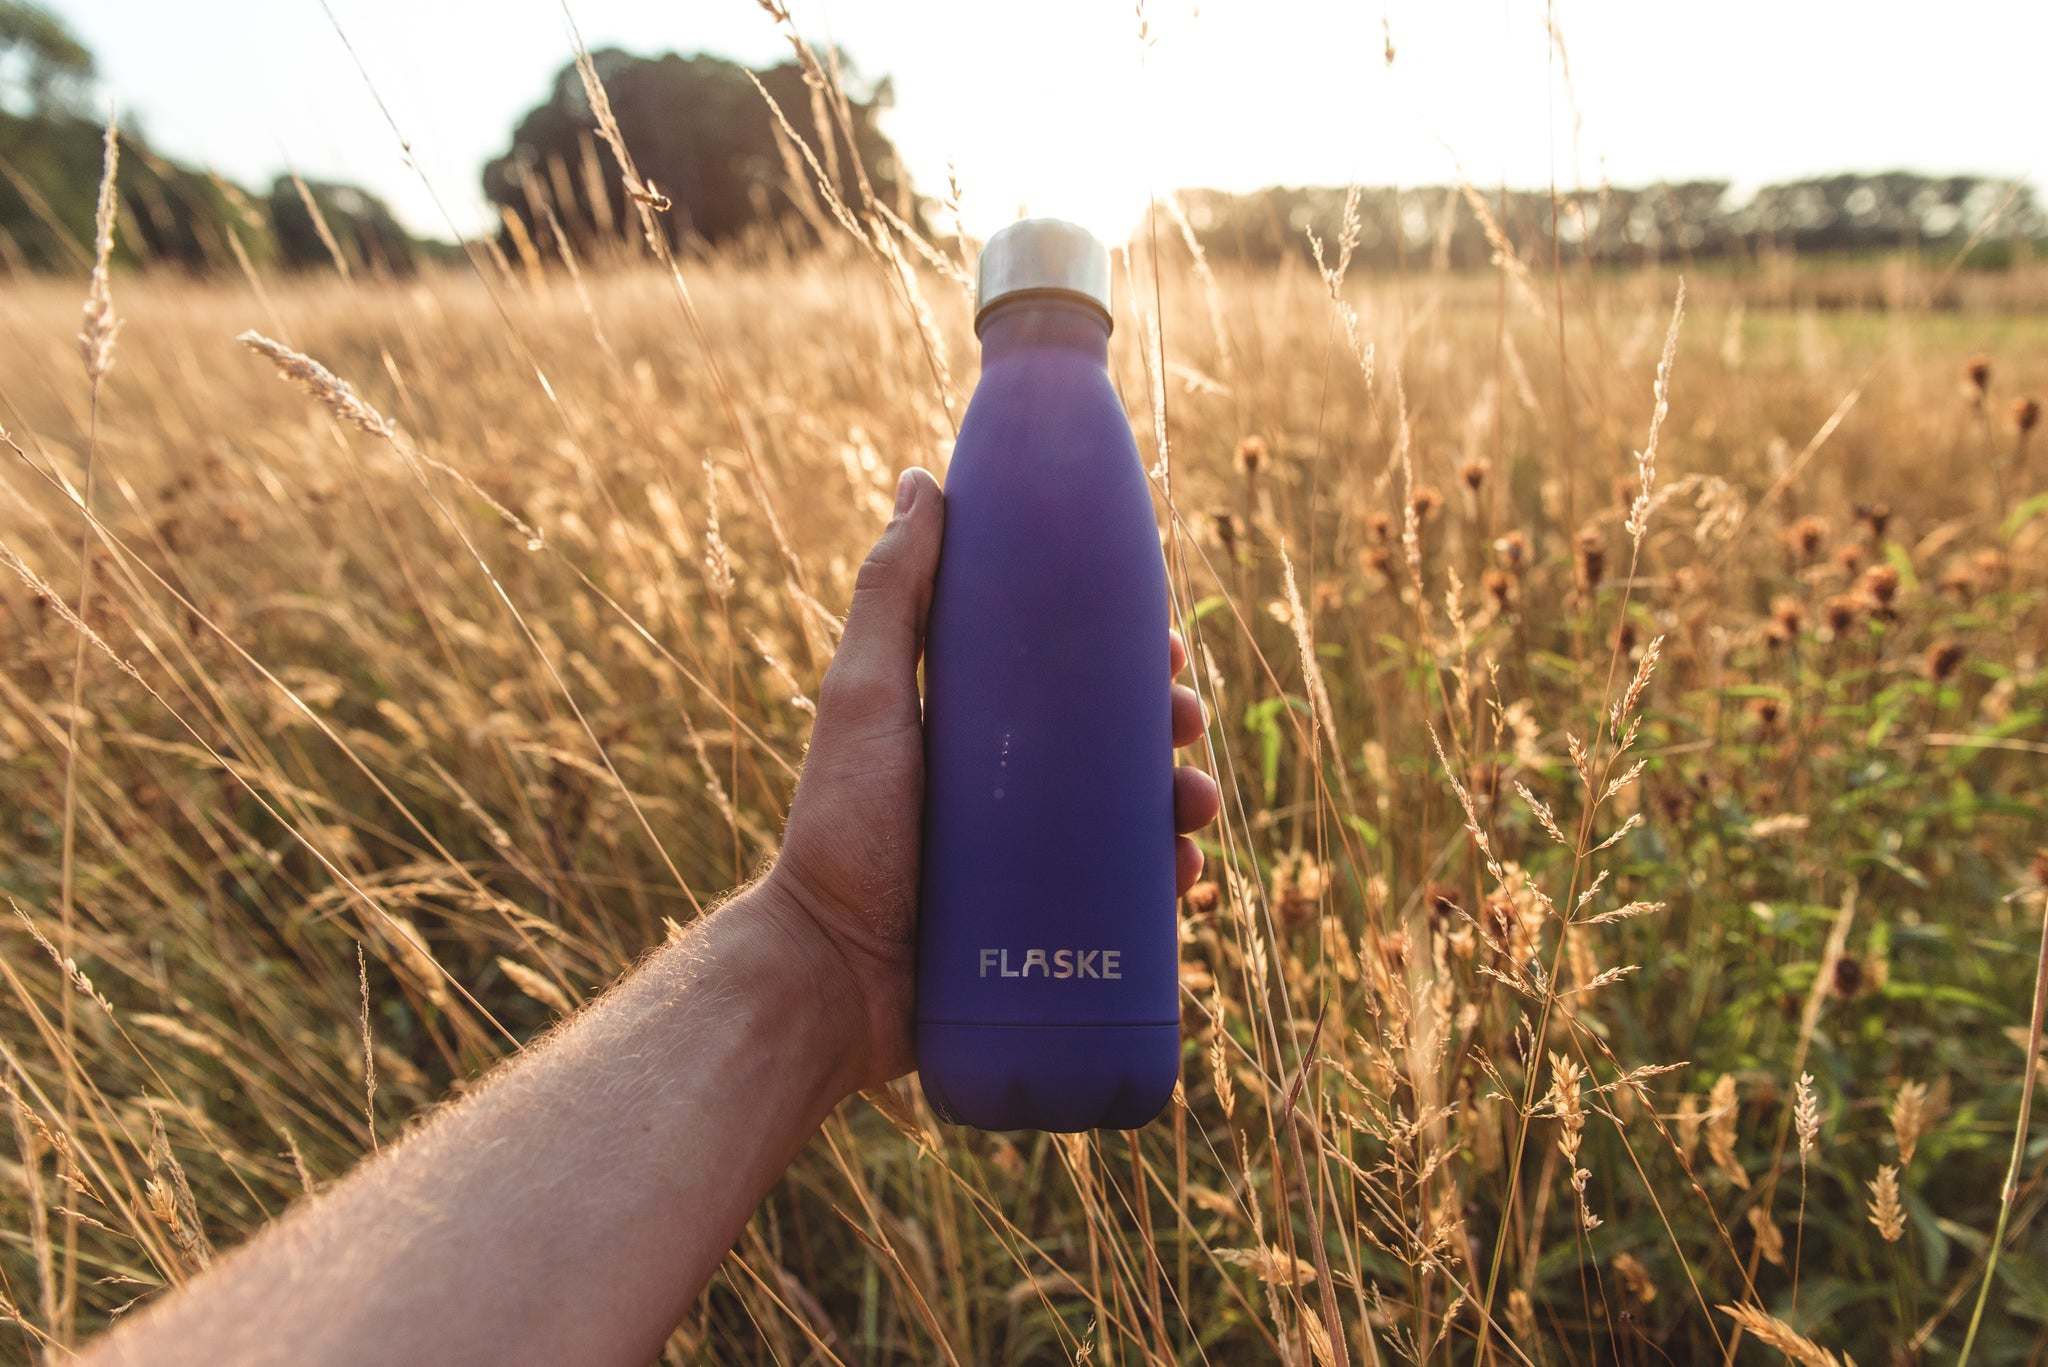 3 Great Reasons To Buy A Reusable Water Bottle